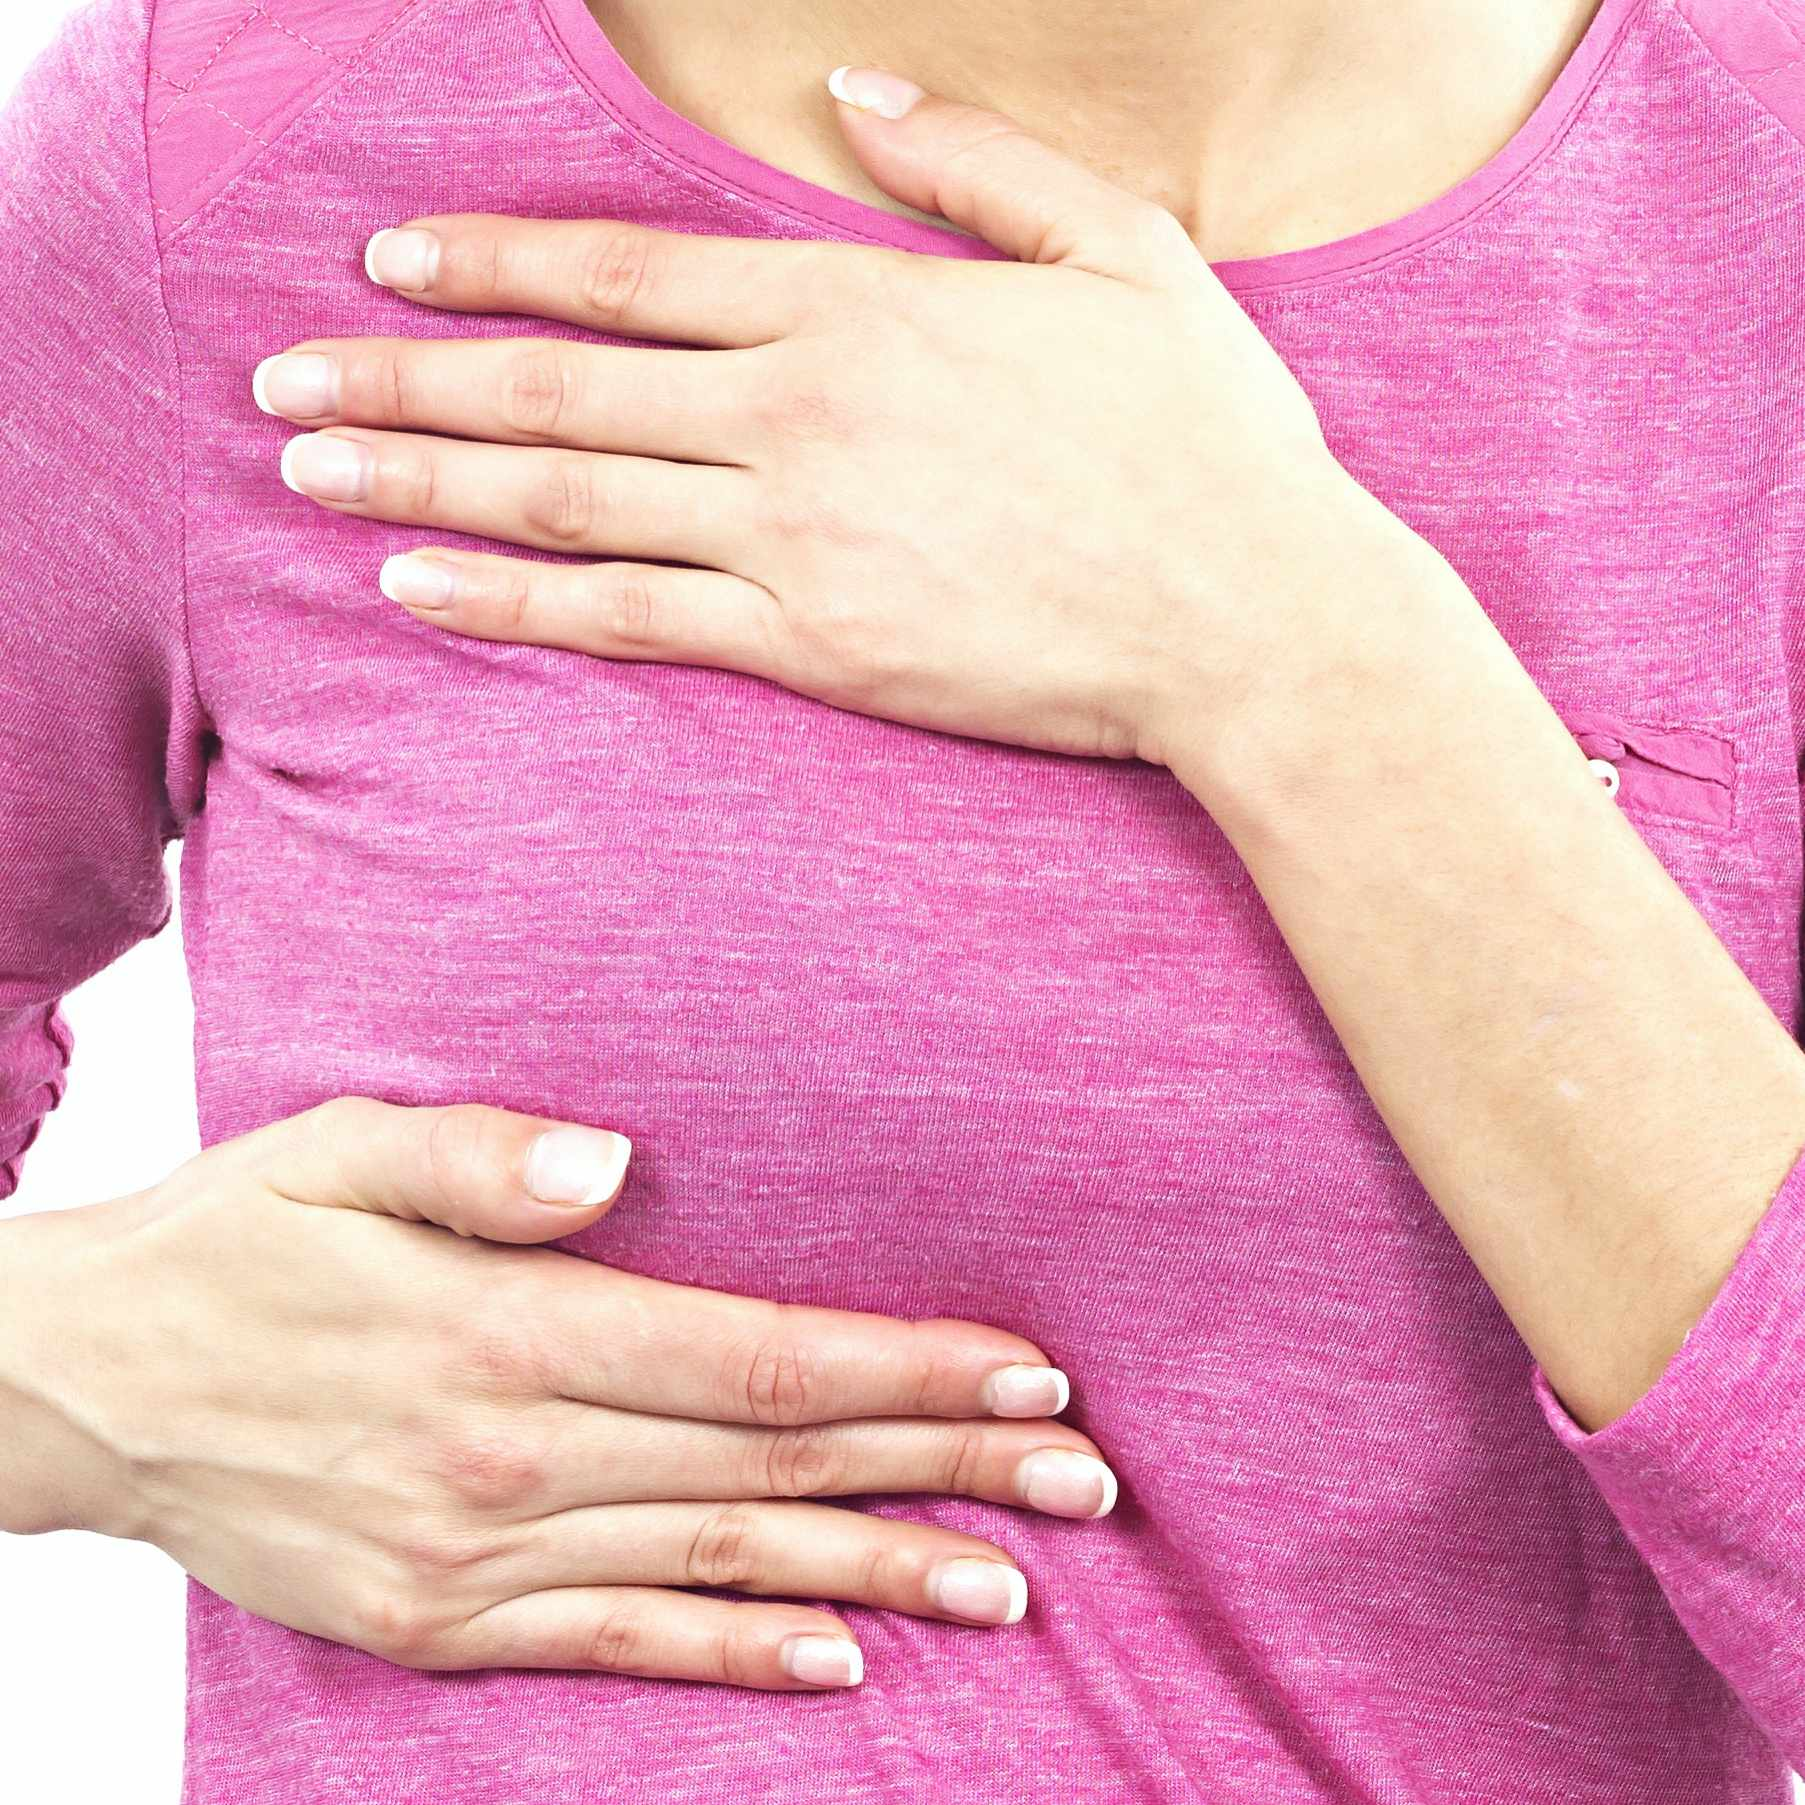 a woman in a pink shirt gently holding the top and bottom of her sore or tender breast